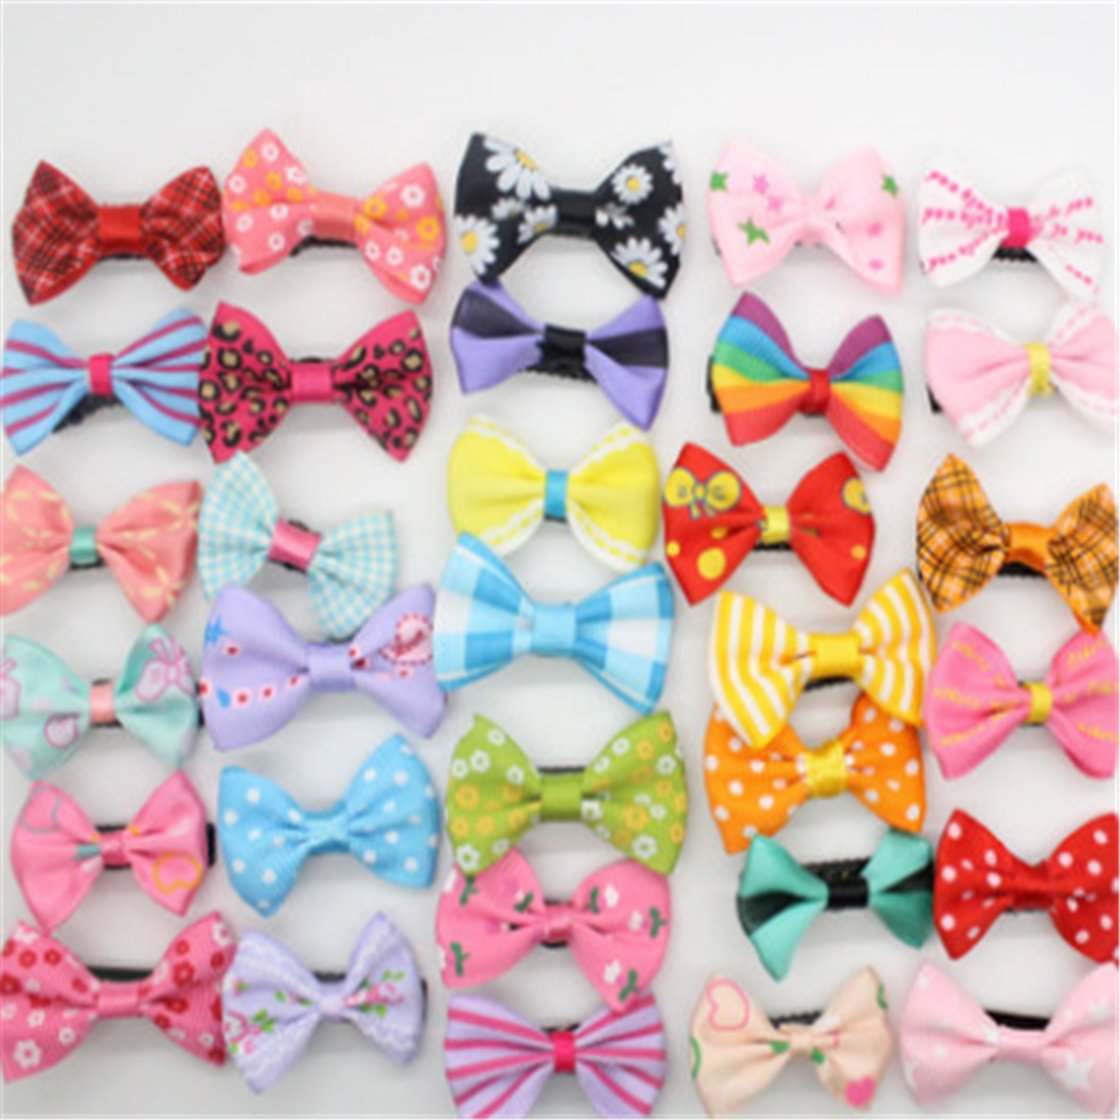 50pcs Colorful Hair Bows $3.53...